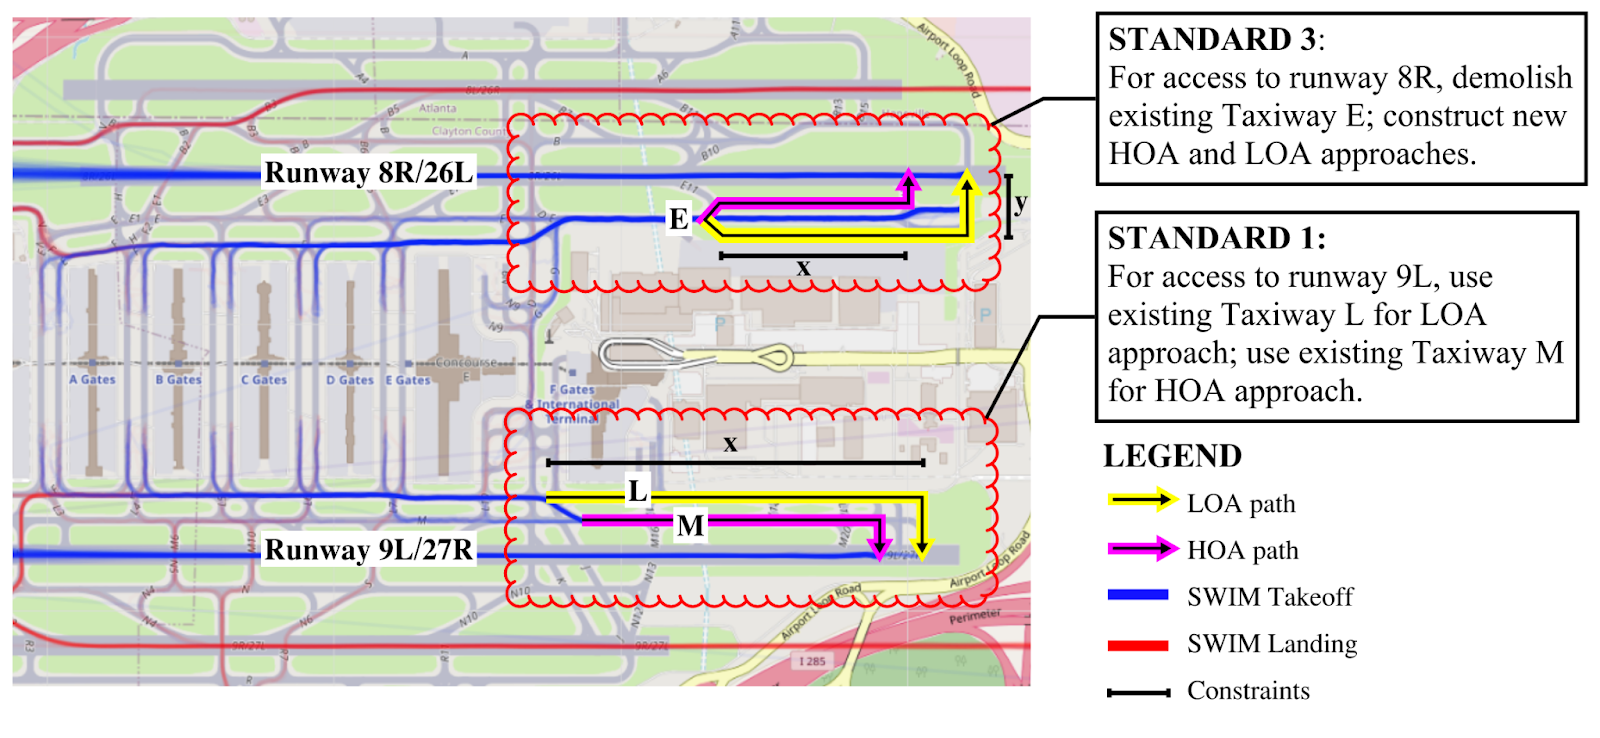 A schematic of how High Occupancy Aircraft (HOA) and Low Occupancy Aircraft (LOA) departure queues could be separated at ATL airport, requiring traffic flow reconfiguration on the southern runway and retrofitting on the northern runway.